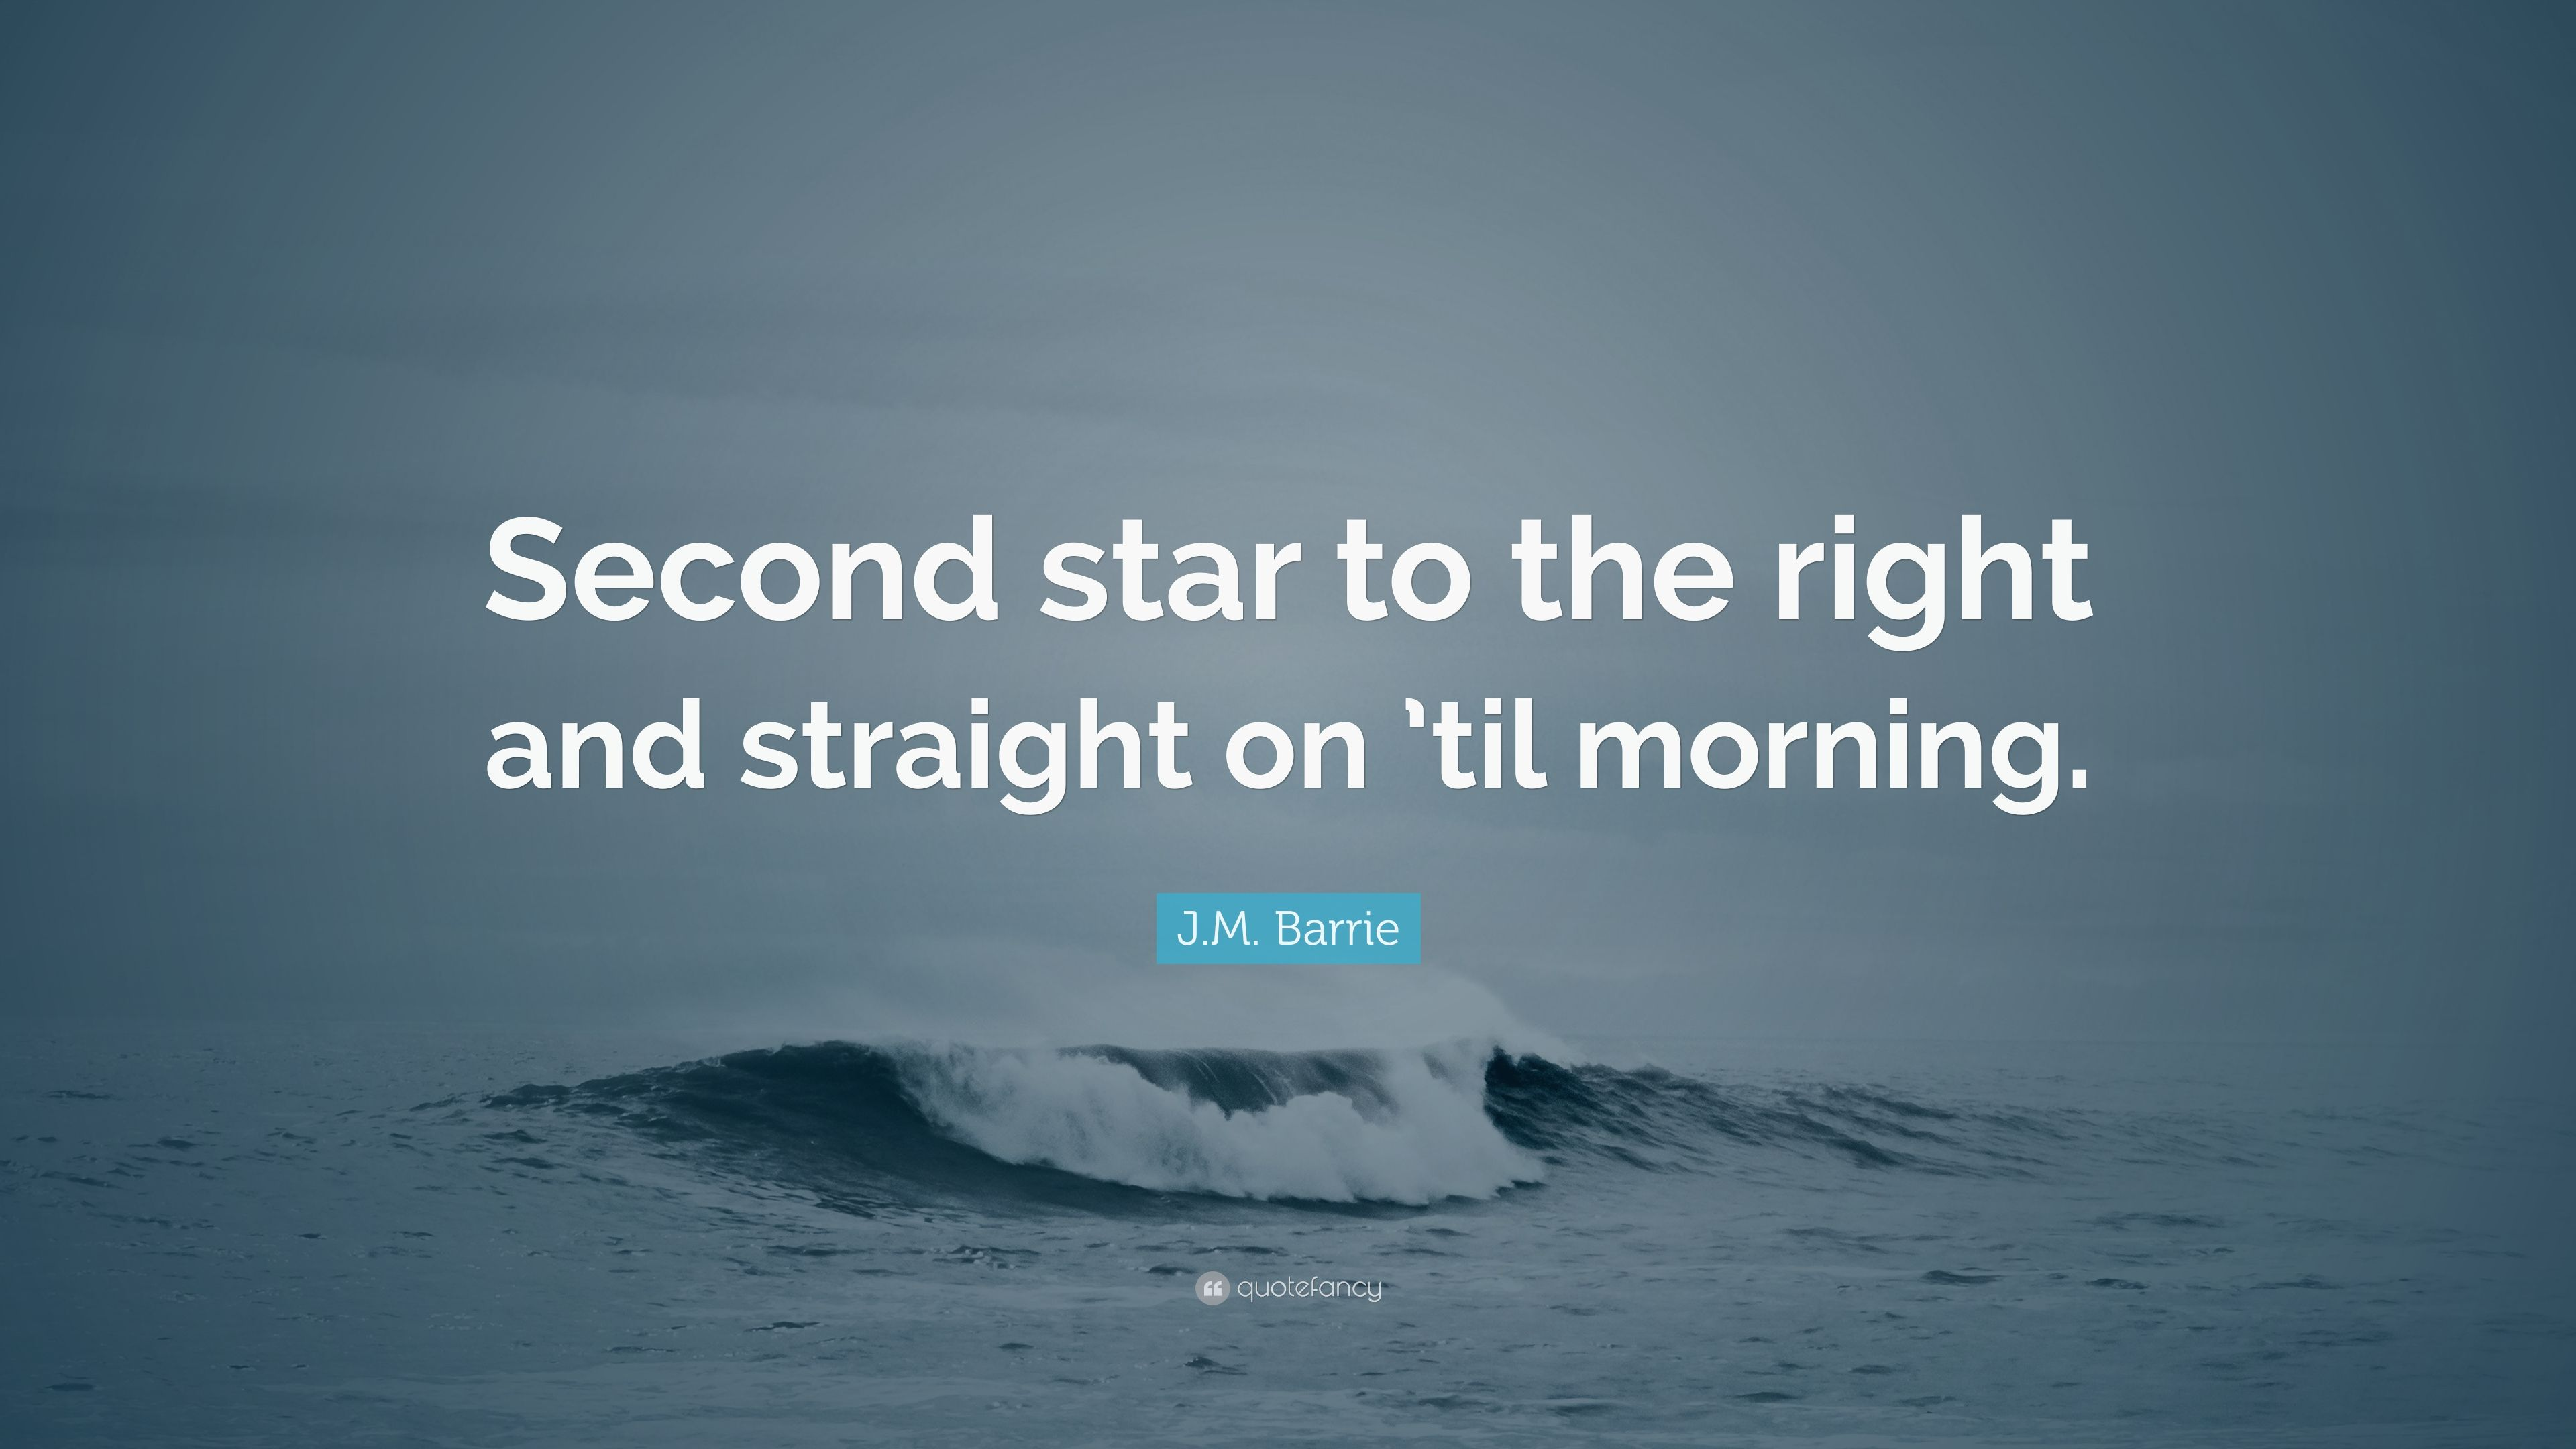 Jm Barrie Quote Second Star To The Right And Straight On Til